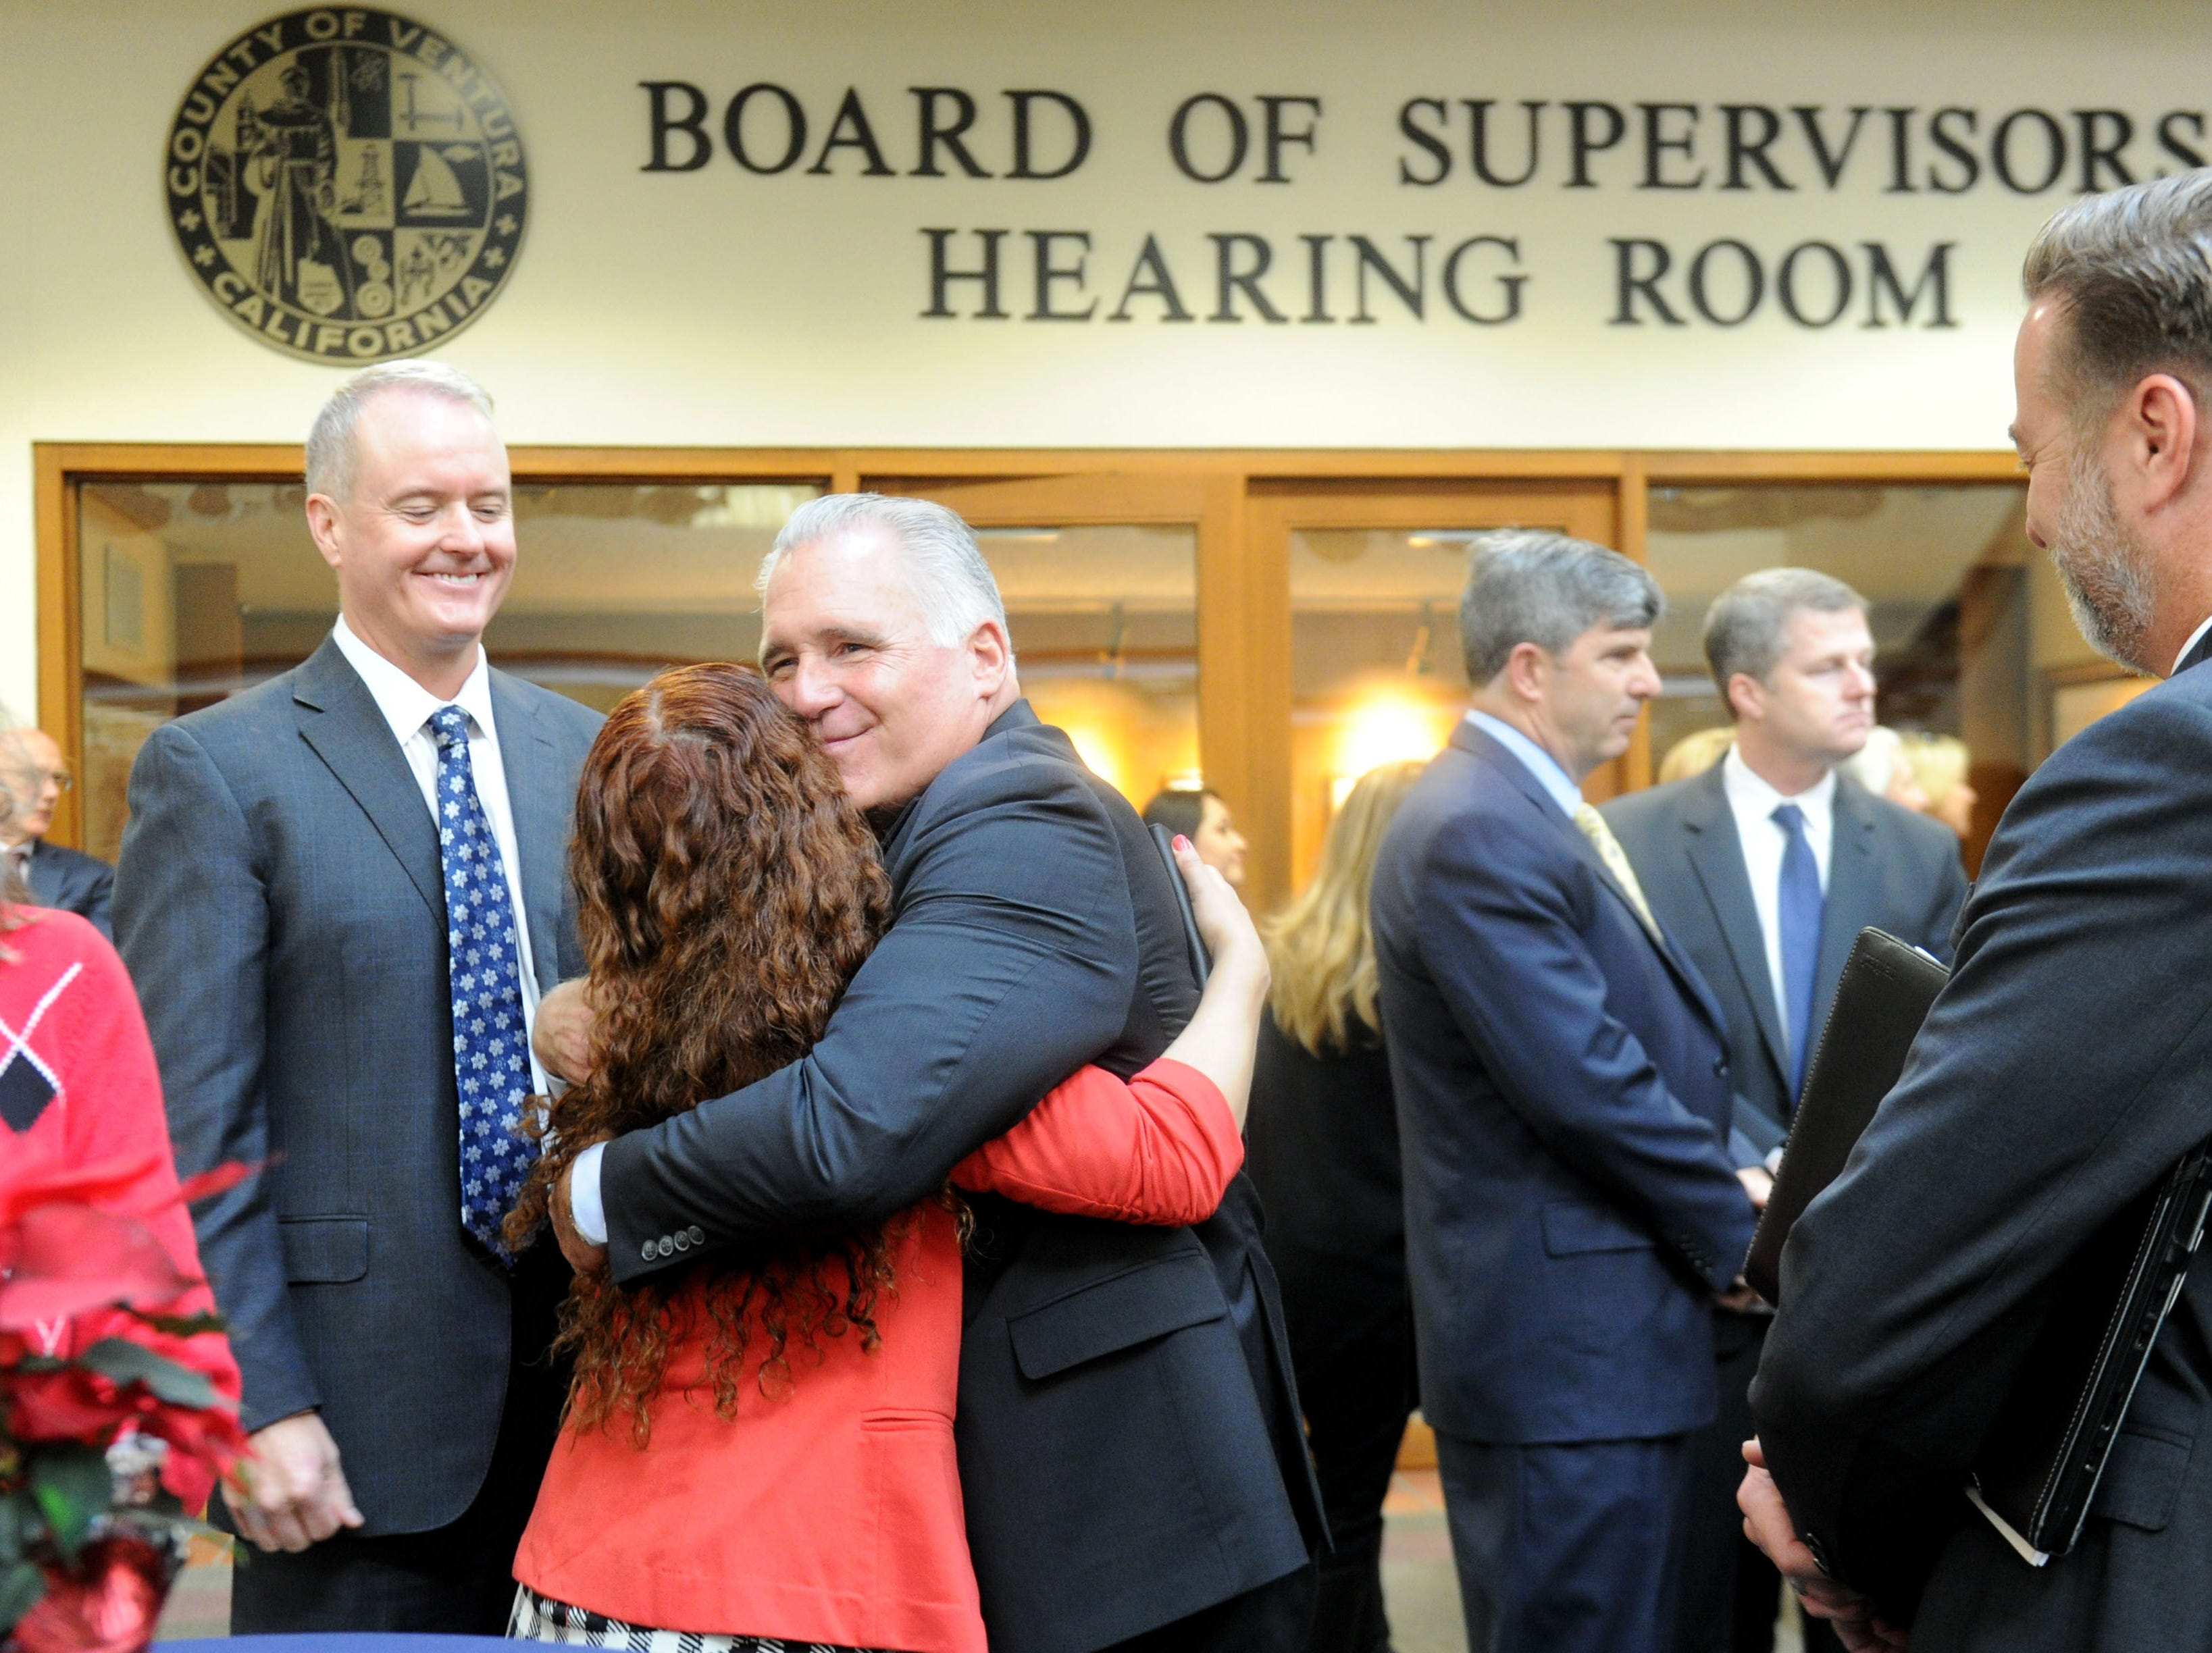 County Executive Officer Mike Powers watches as his executive assistant, Veronica Gonzalez, hugs Supervisor Peter Foy at his going-away reception outside the Board of Supervisors hearing room.